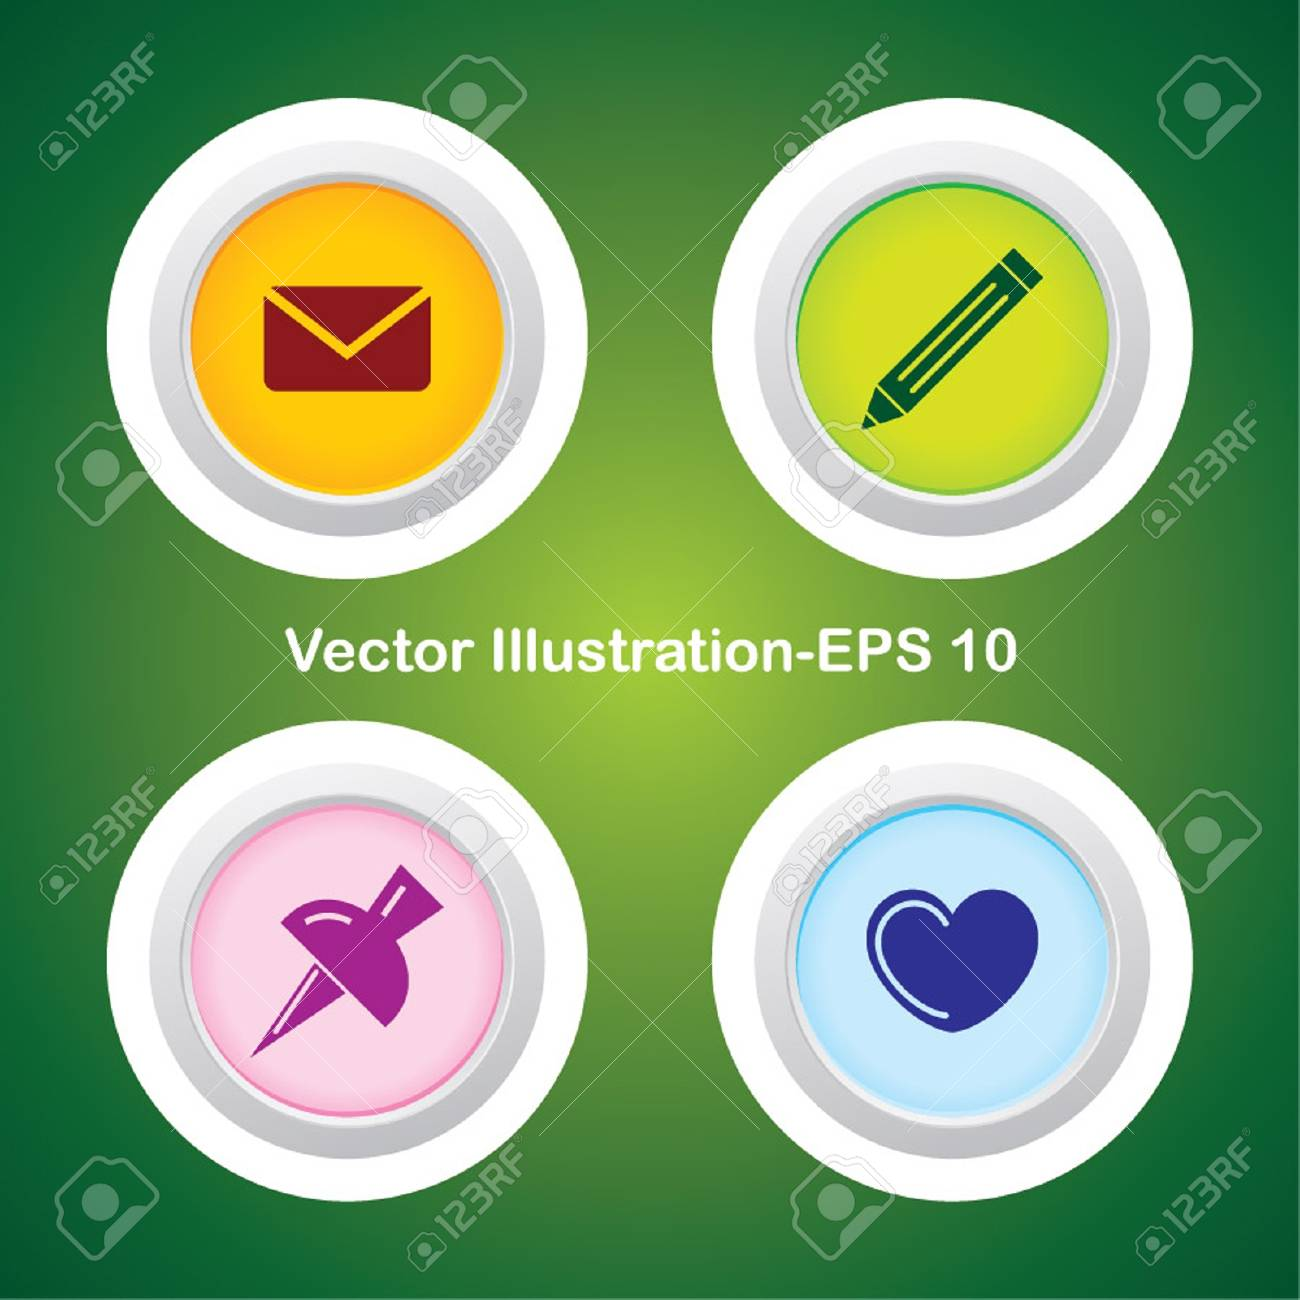 Four Vector Buttons with Very Useful Web Icons - 21700209